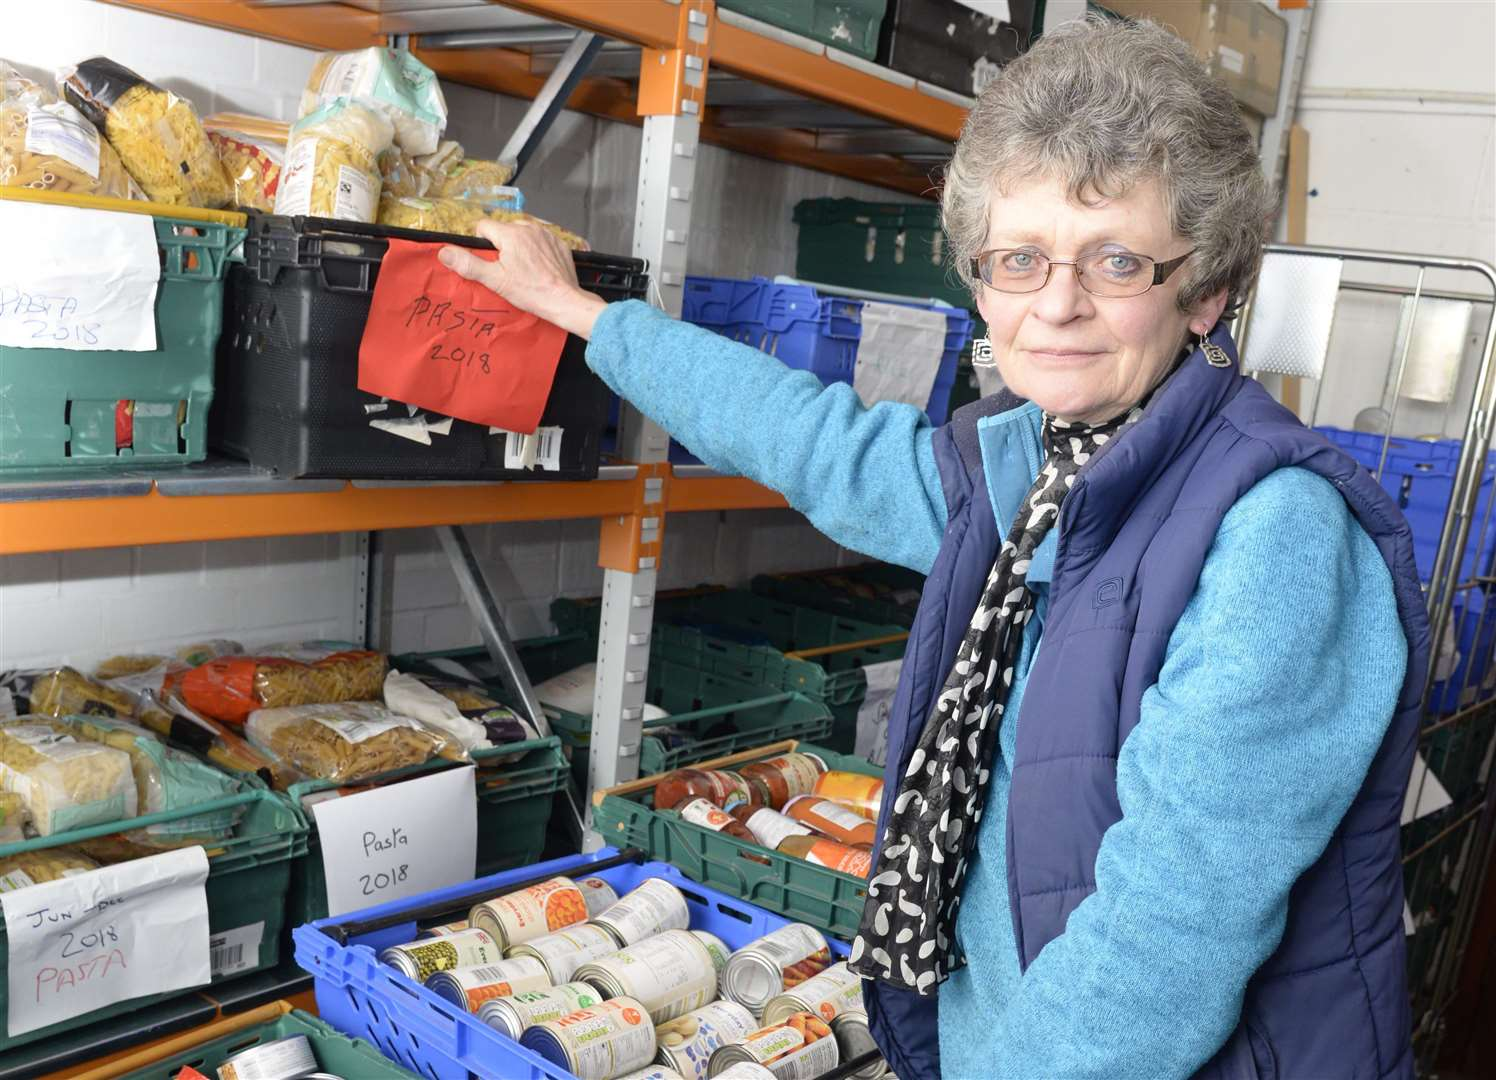 Project coordinator Sheila Ward made the decision to close the foodbanks in exchange for a home delivery service Picture: Chris Davey